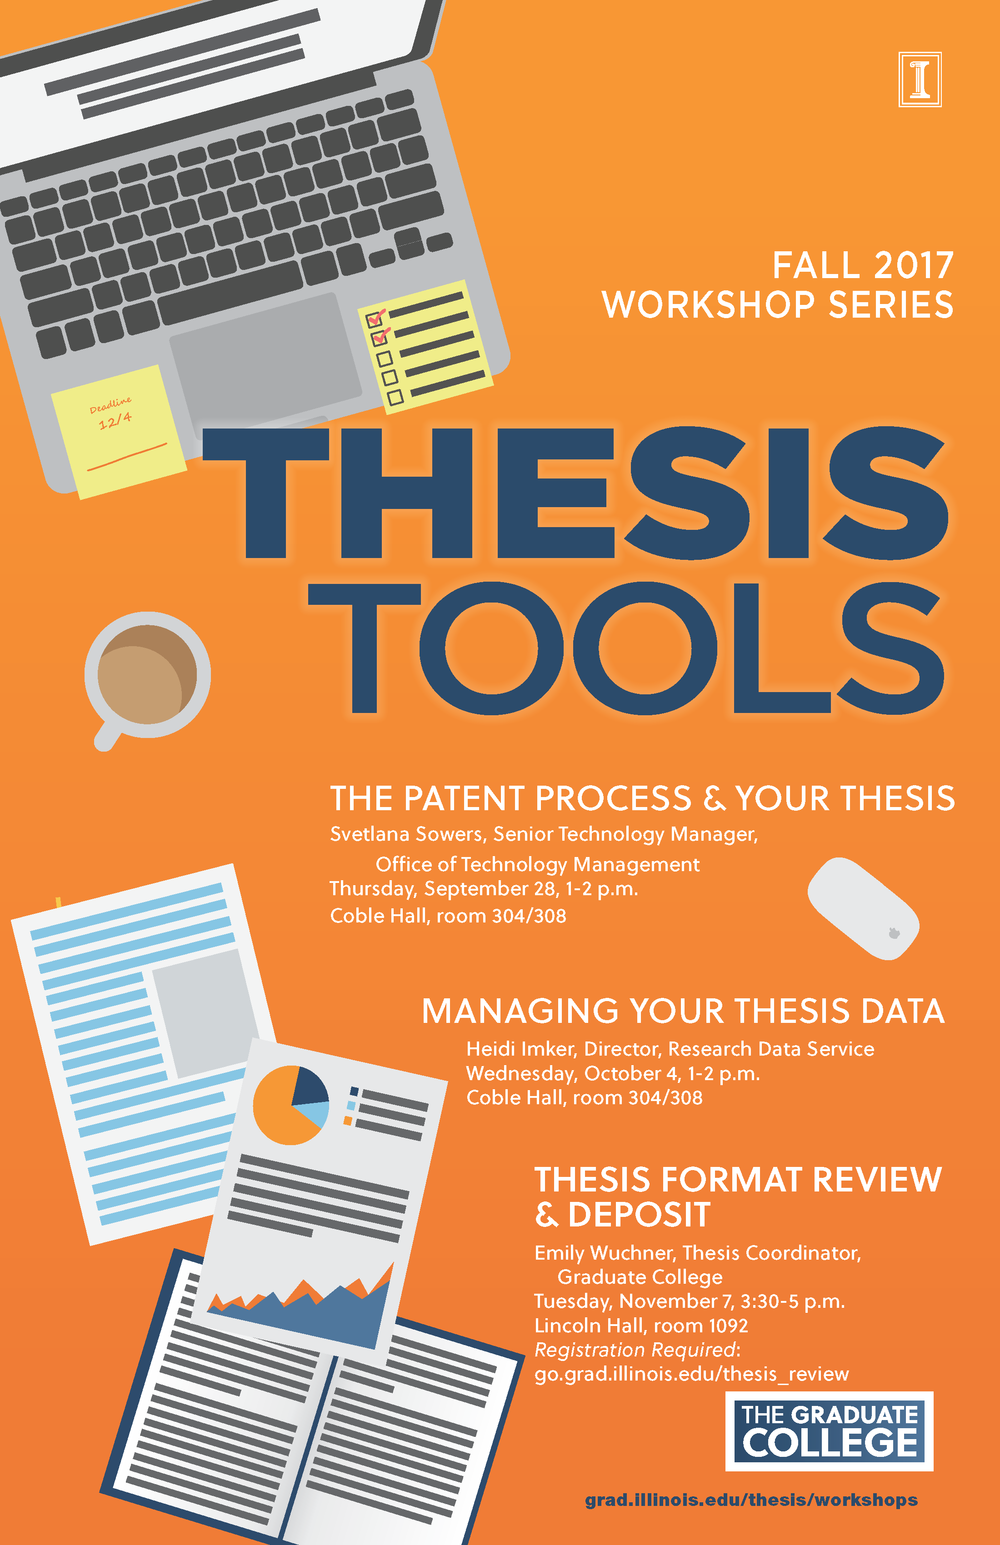 2017 Fall Thesis Tools Workshops